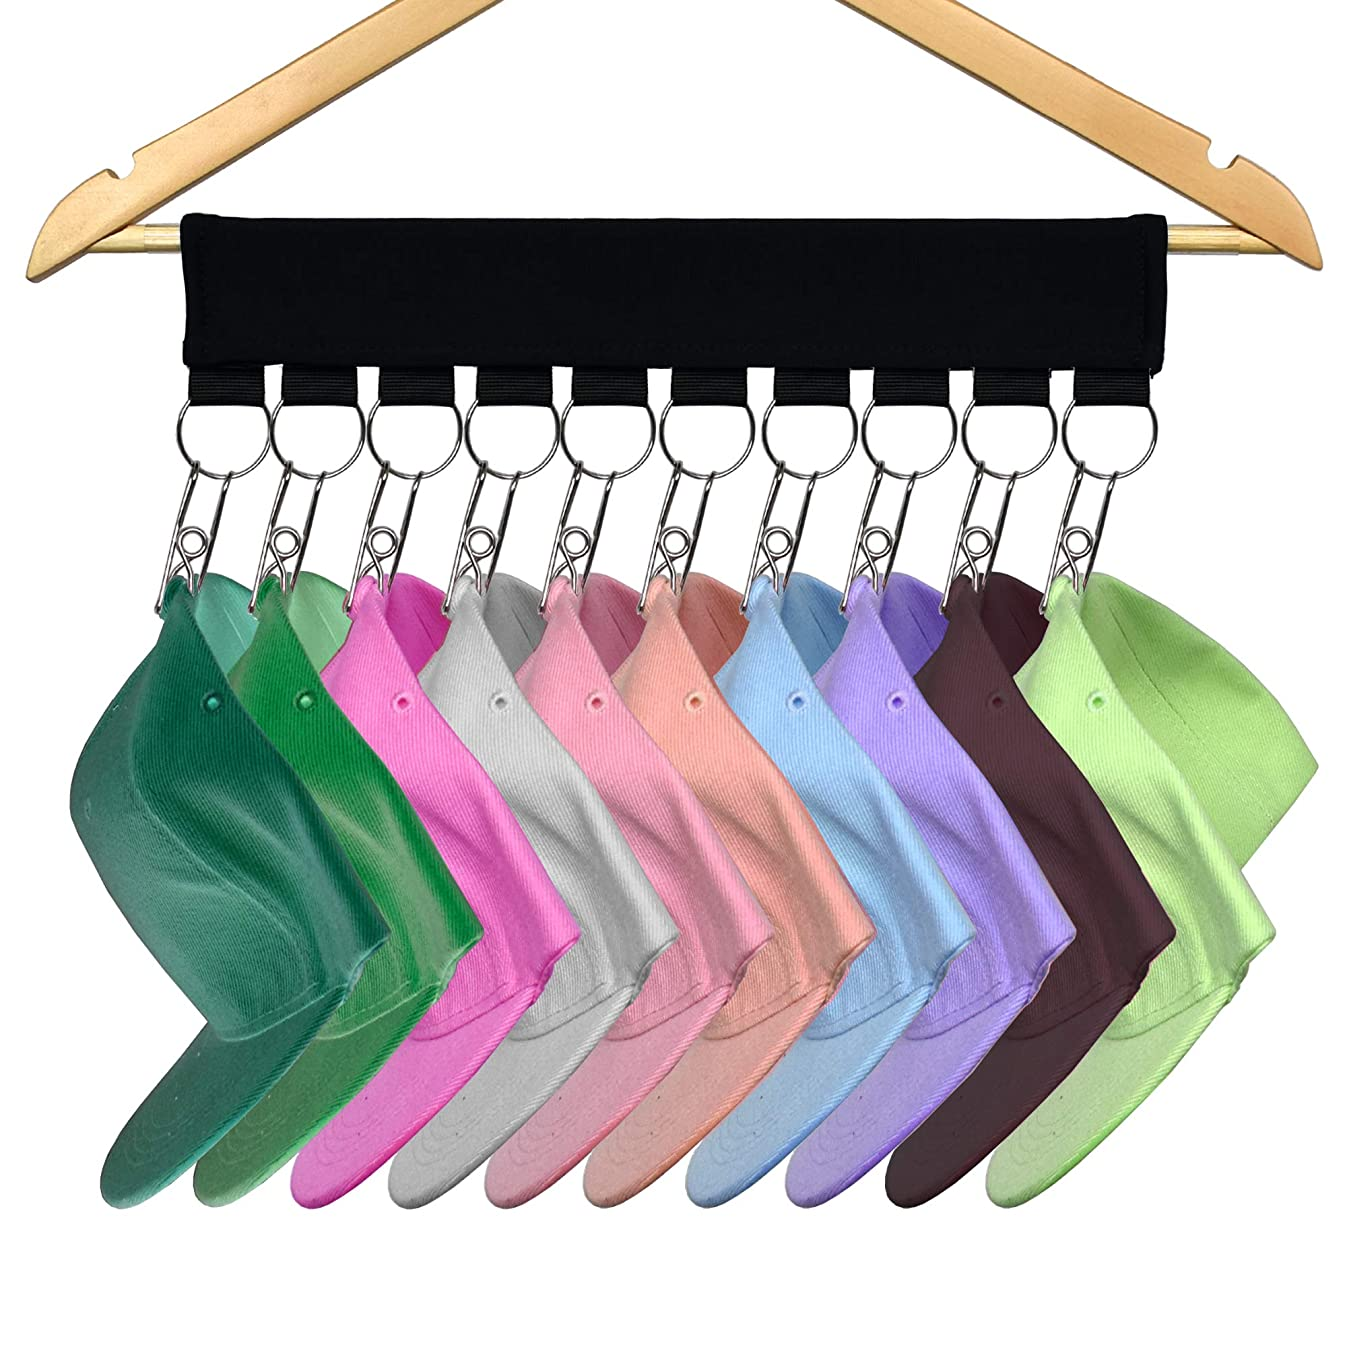 YYST Cap Organizer Hanger, Hat Holder, Hat Organizer - Change Your Ordinary Hanger to Cap Organizer Hanger